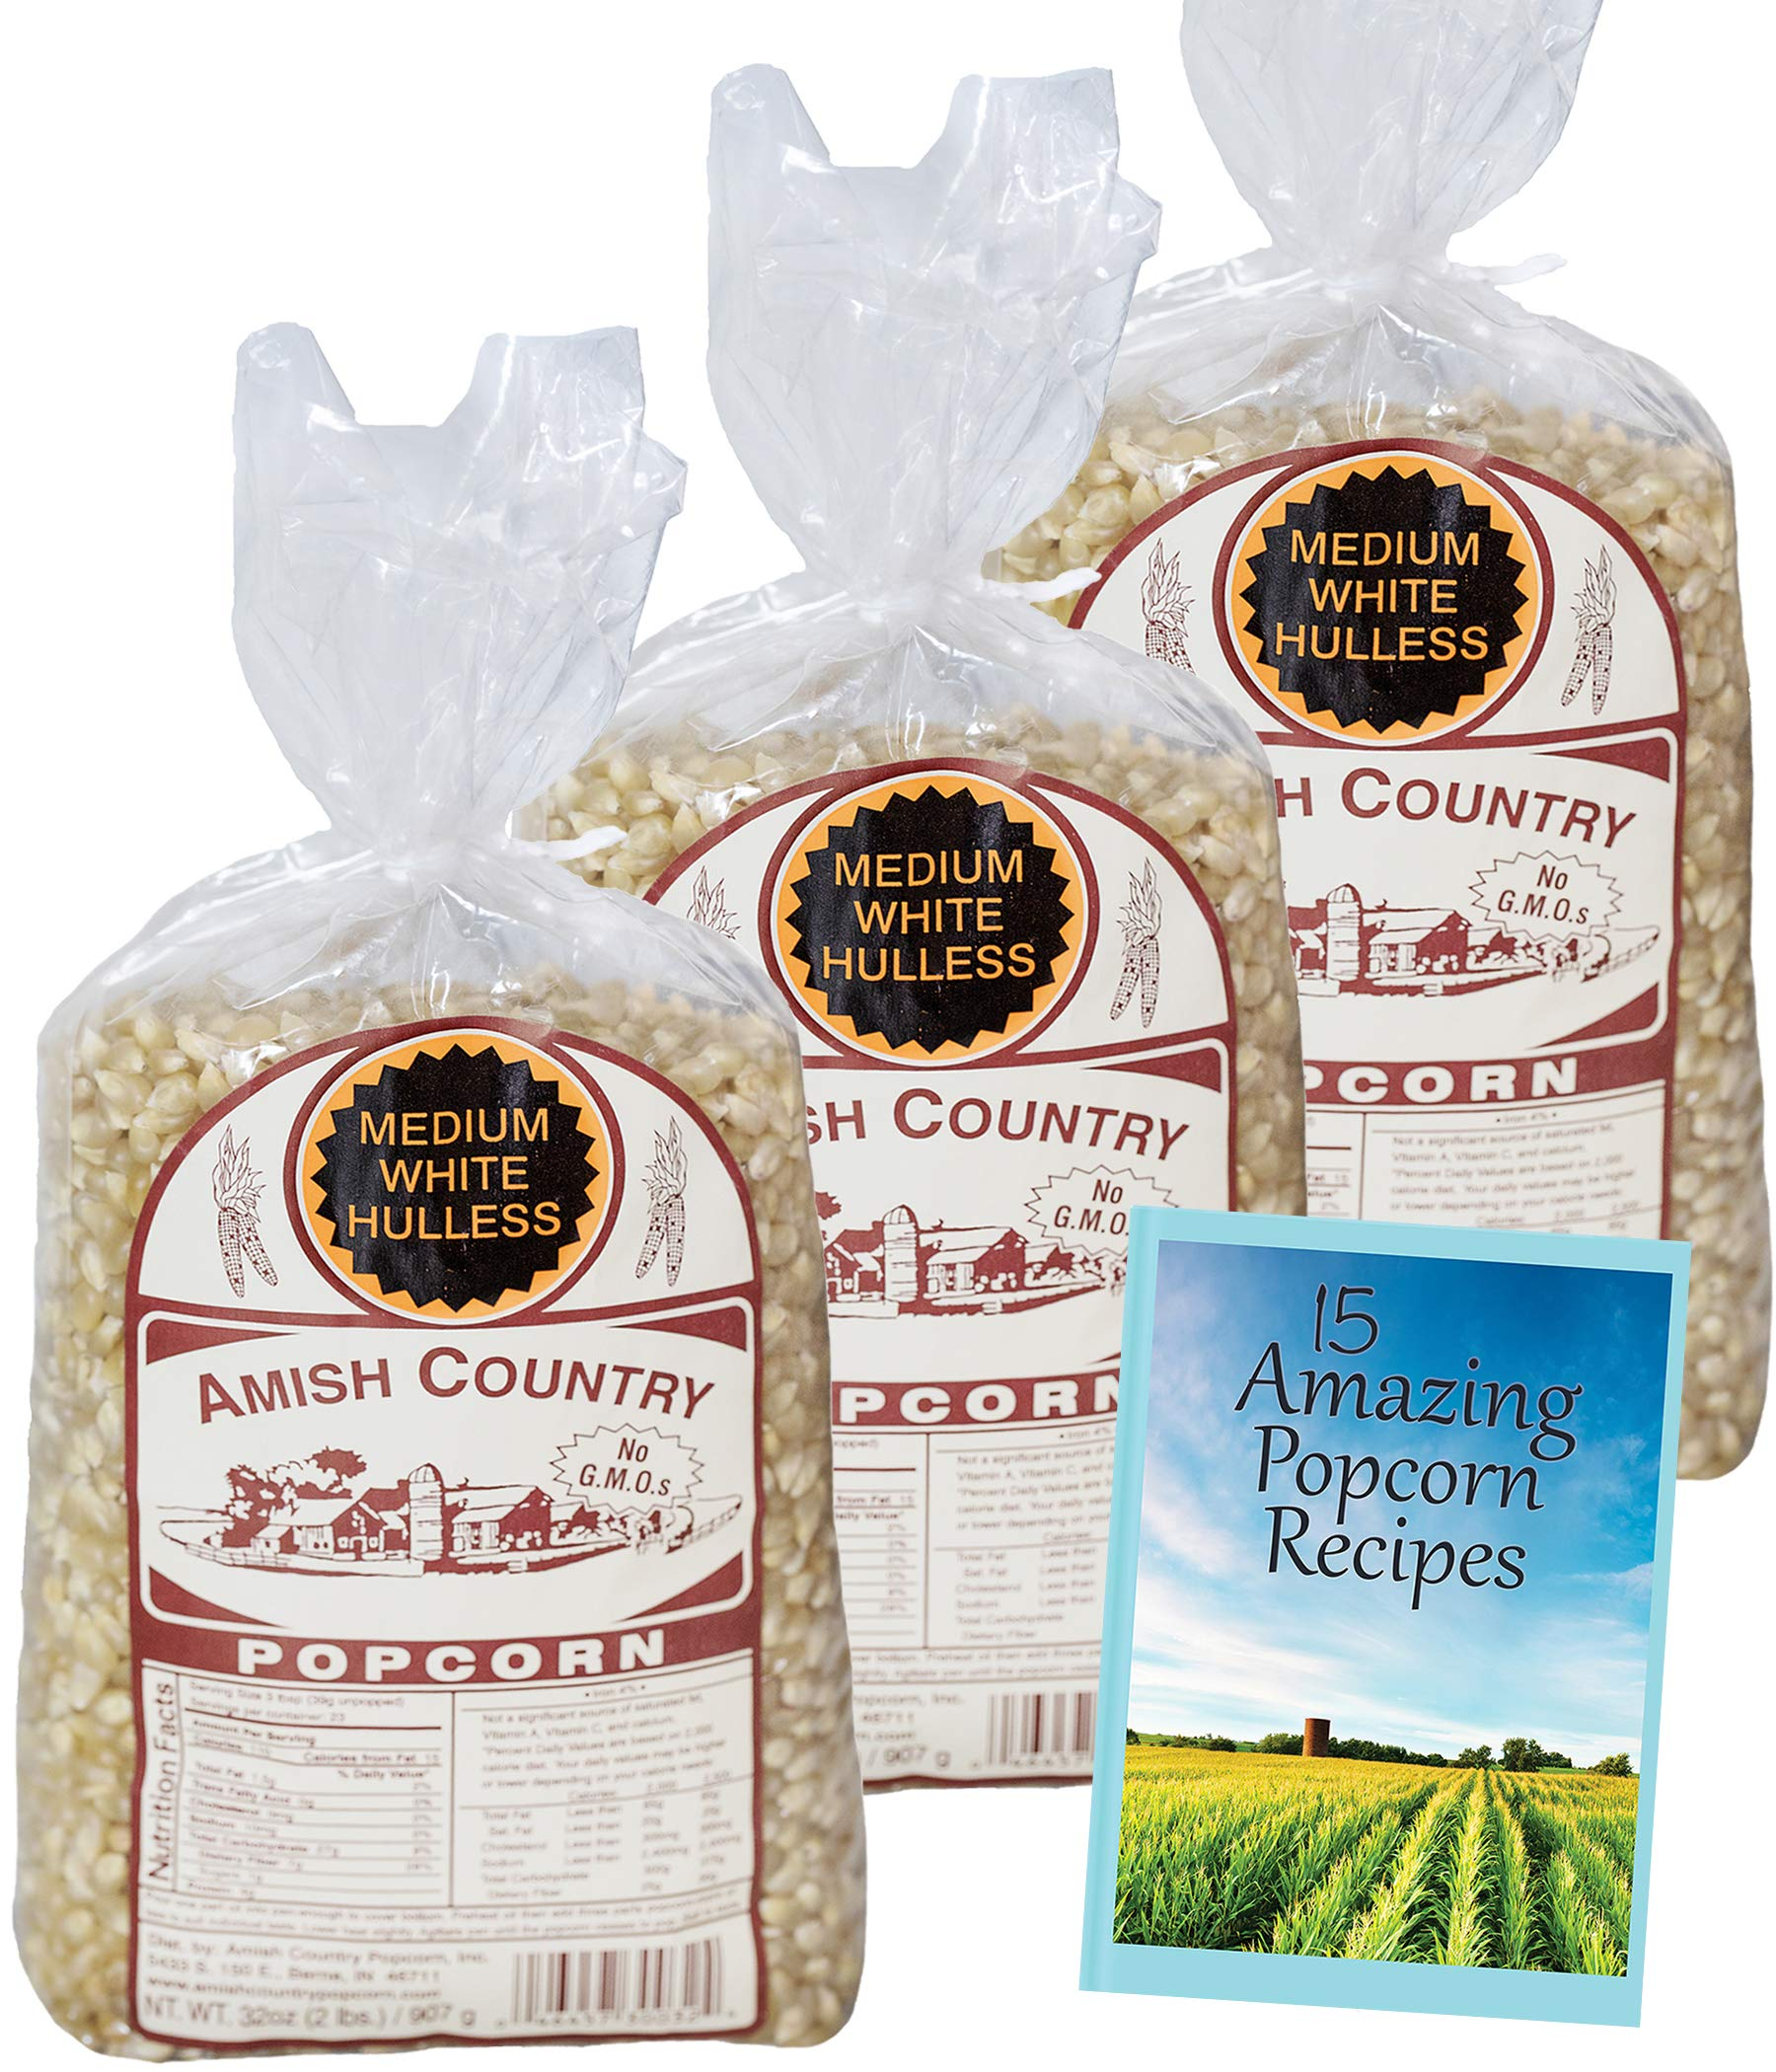 Amish Country Popcorn - 3 (2 Pound Bags) Medium White Popcorn Gift Set Old Fashioned, Non GMO and Gluten Free - With Recipe Guide by Amish Country Popcorn (Image #2)